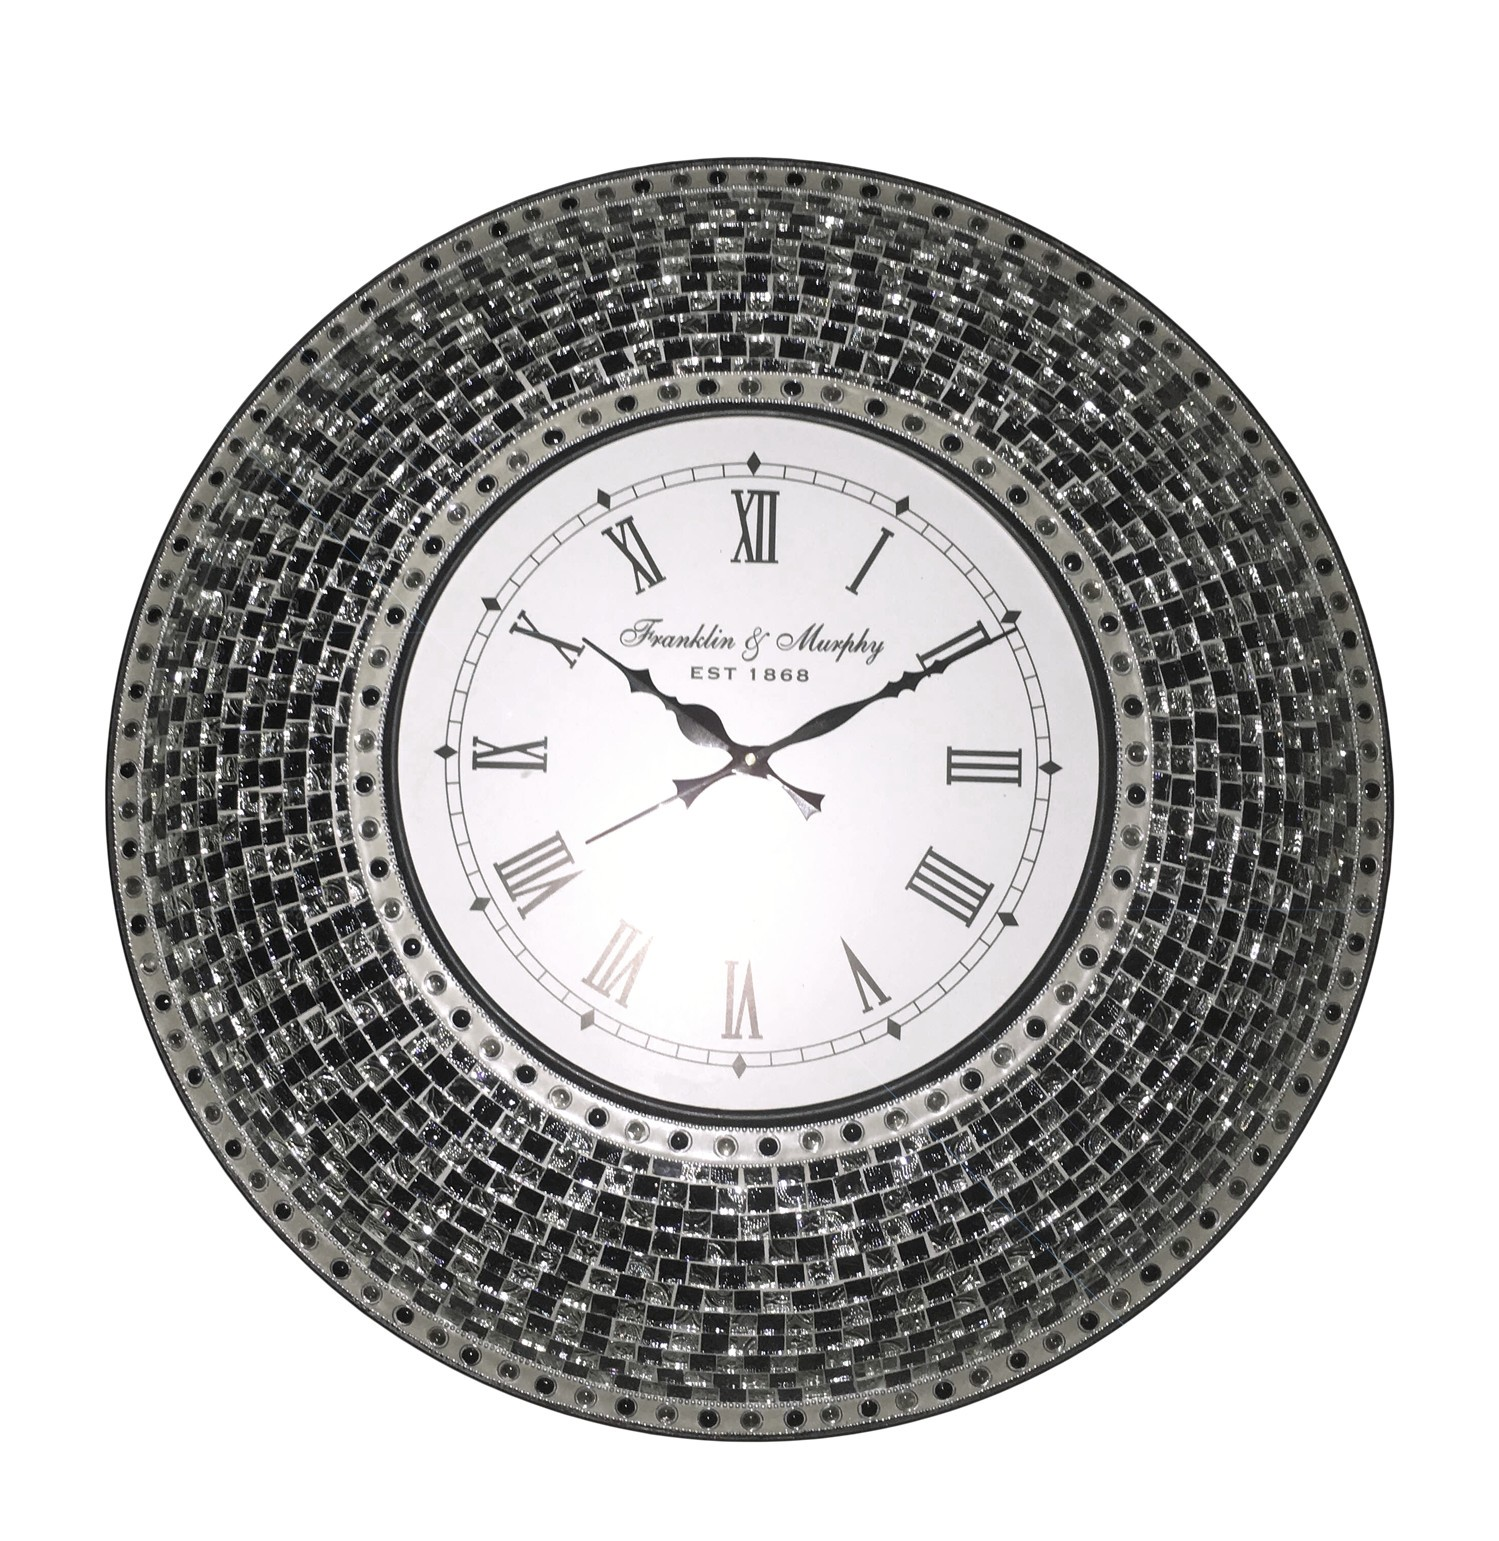 Mosaic wall clock choice image home wall decoration ideas buy 225 black handmade glass mosaic wall clock online decorshore amipublicfo choice image amipublicfo Image collections